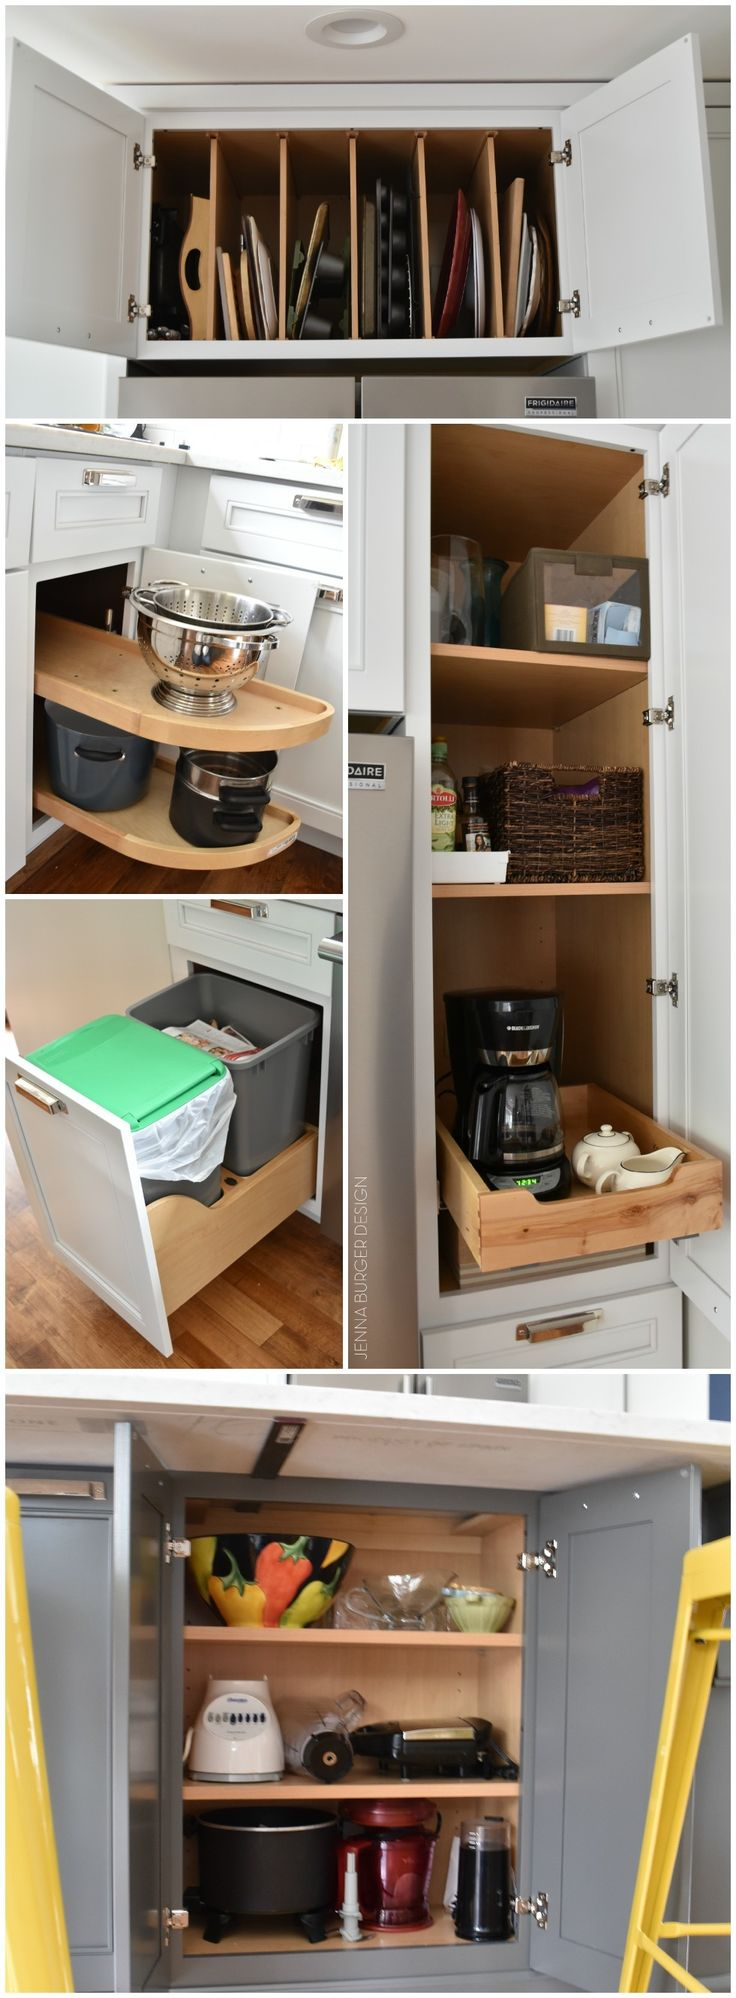 Kraftmaid Cabinet Sizes 25 Best Ideas About Kraftmaid Kitchen Cabinets On Pinterest